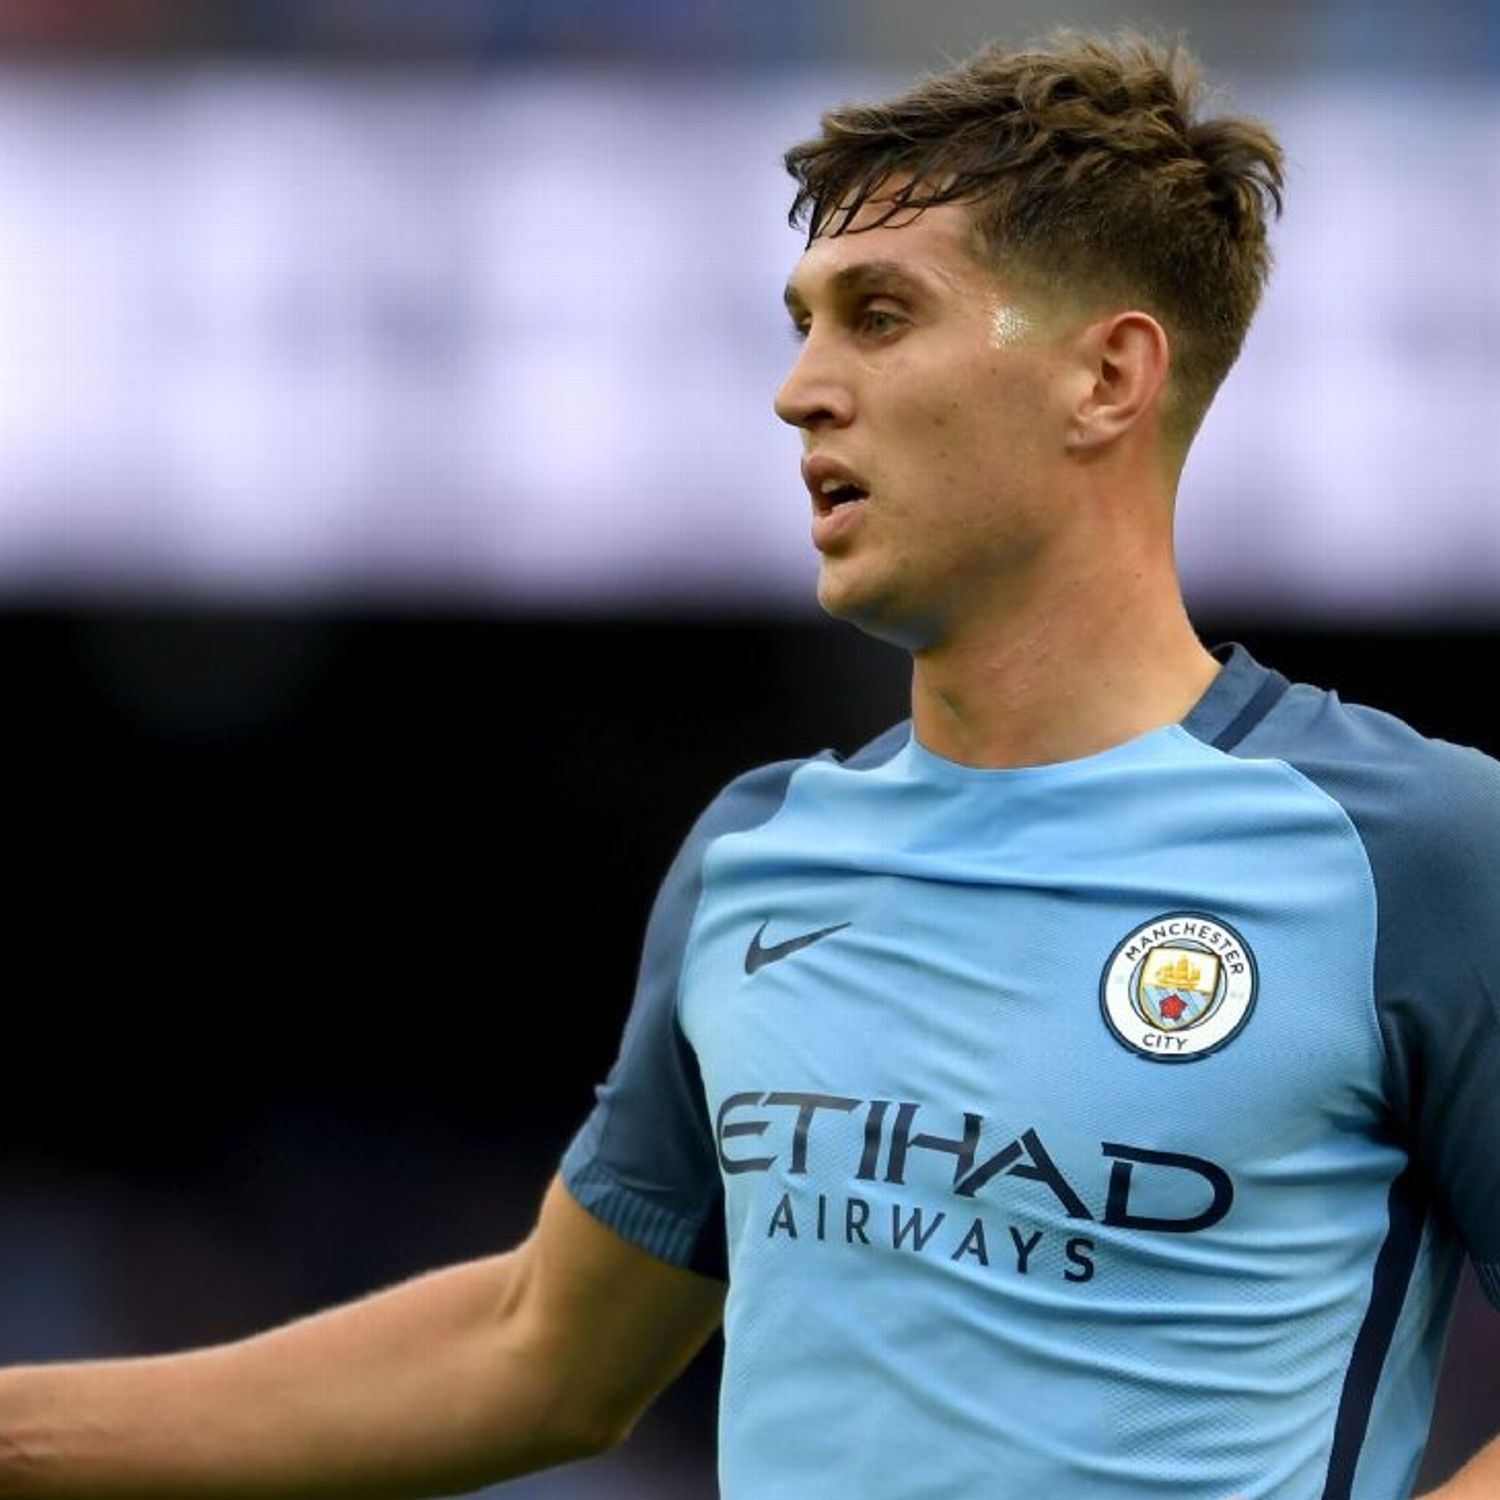 John Stones has dream to captain Manchester City and England